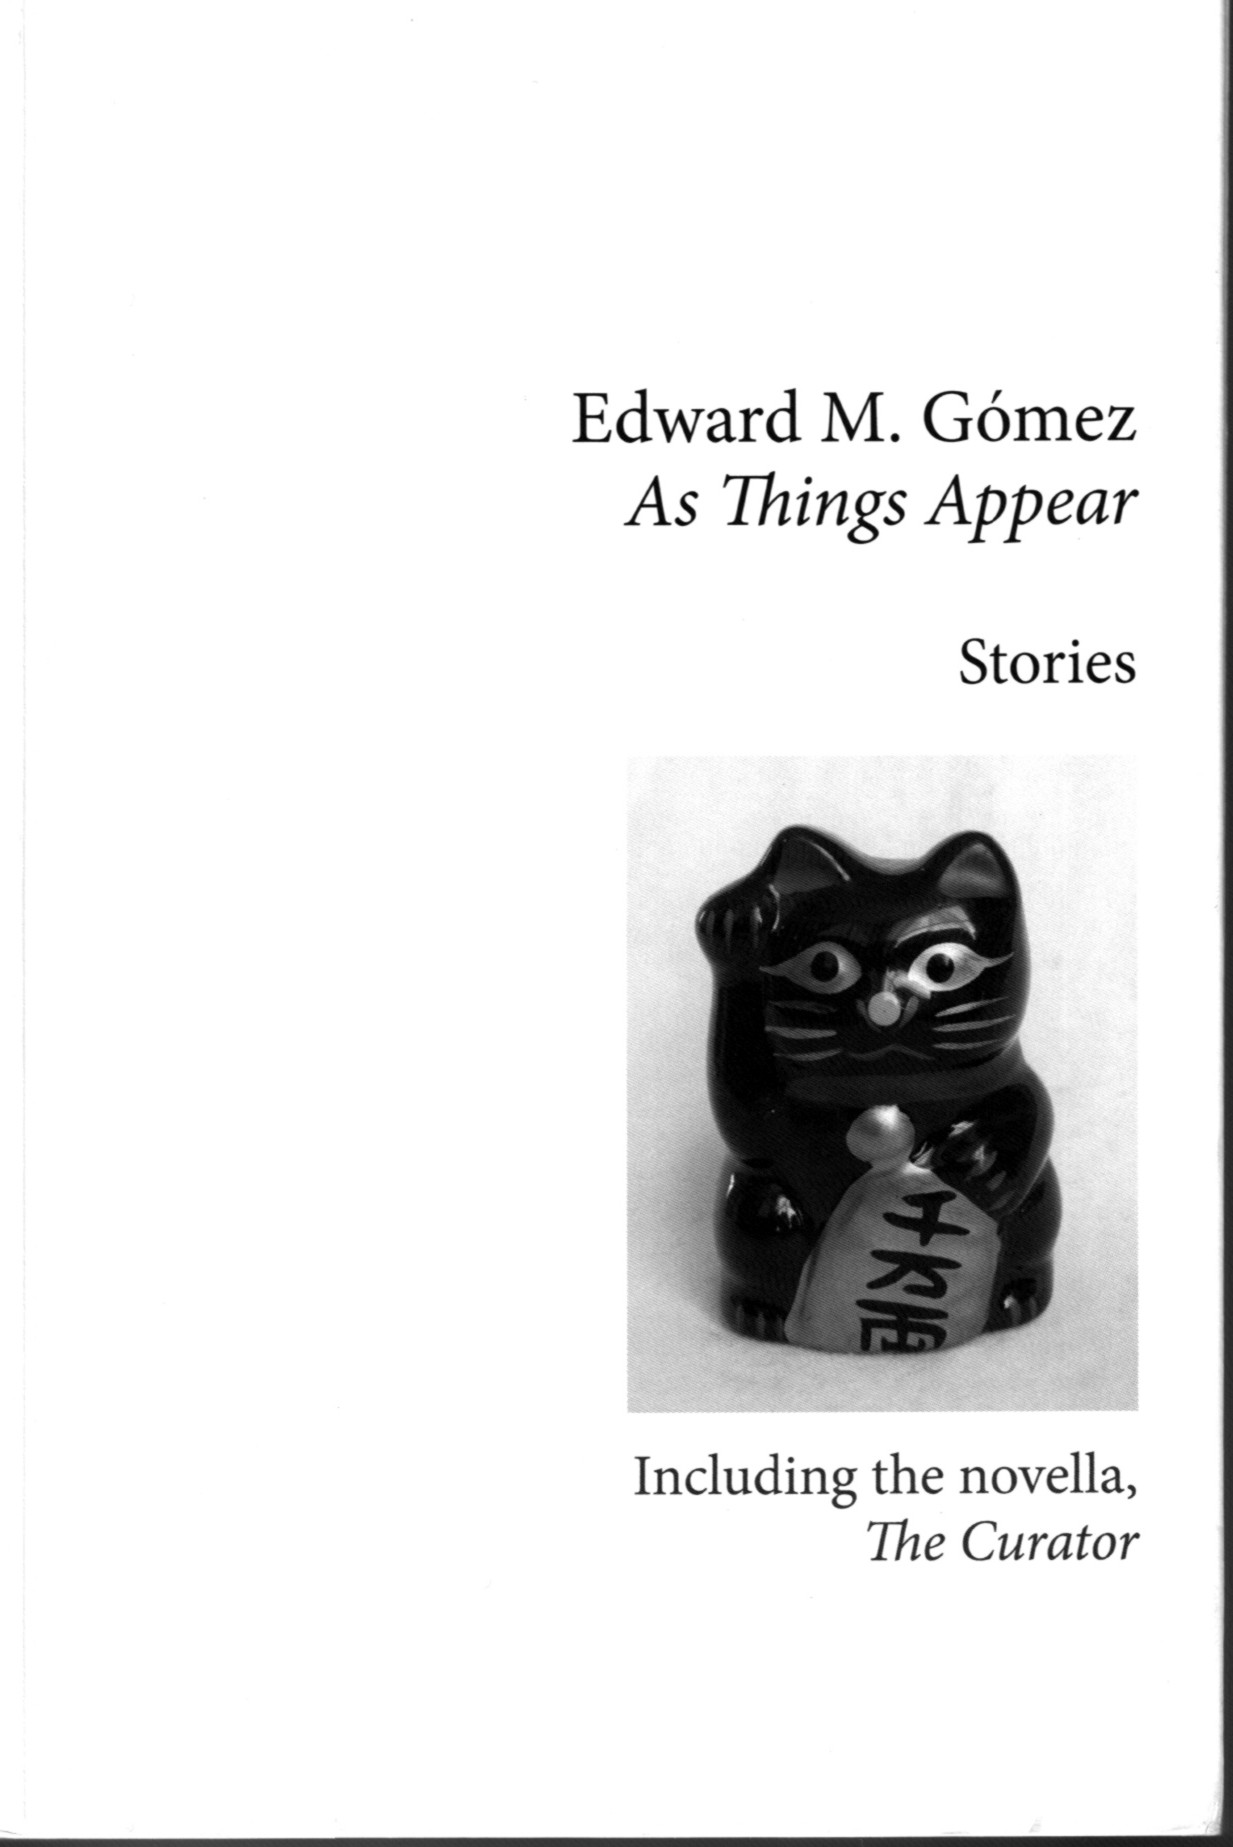 As Things Appear by Edward M. Gómez 288 pages, softcover Ballena Studio, New York, 2015 ballenastudio.com